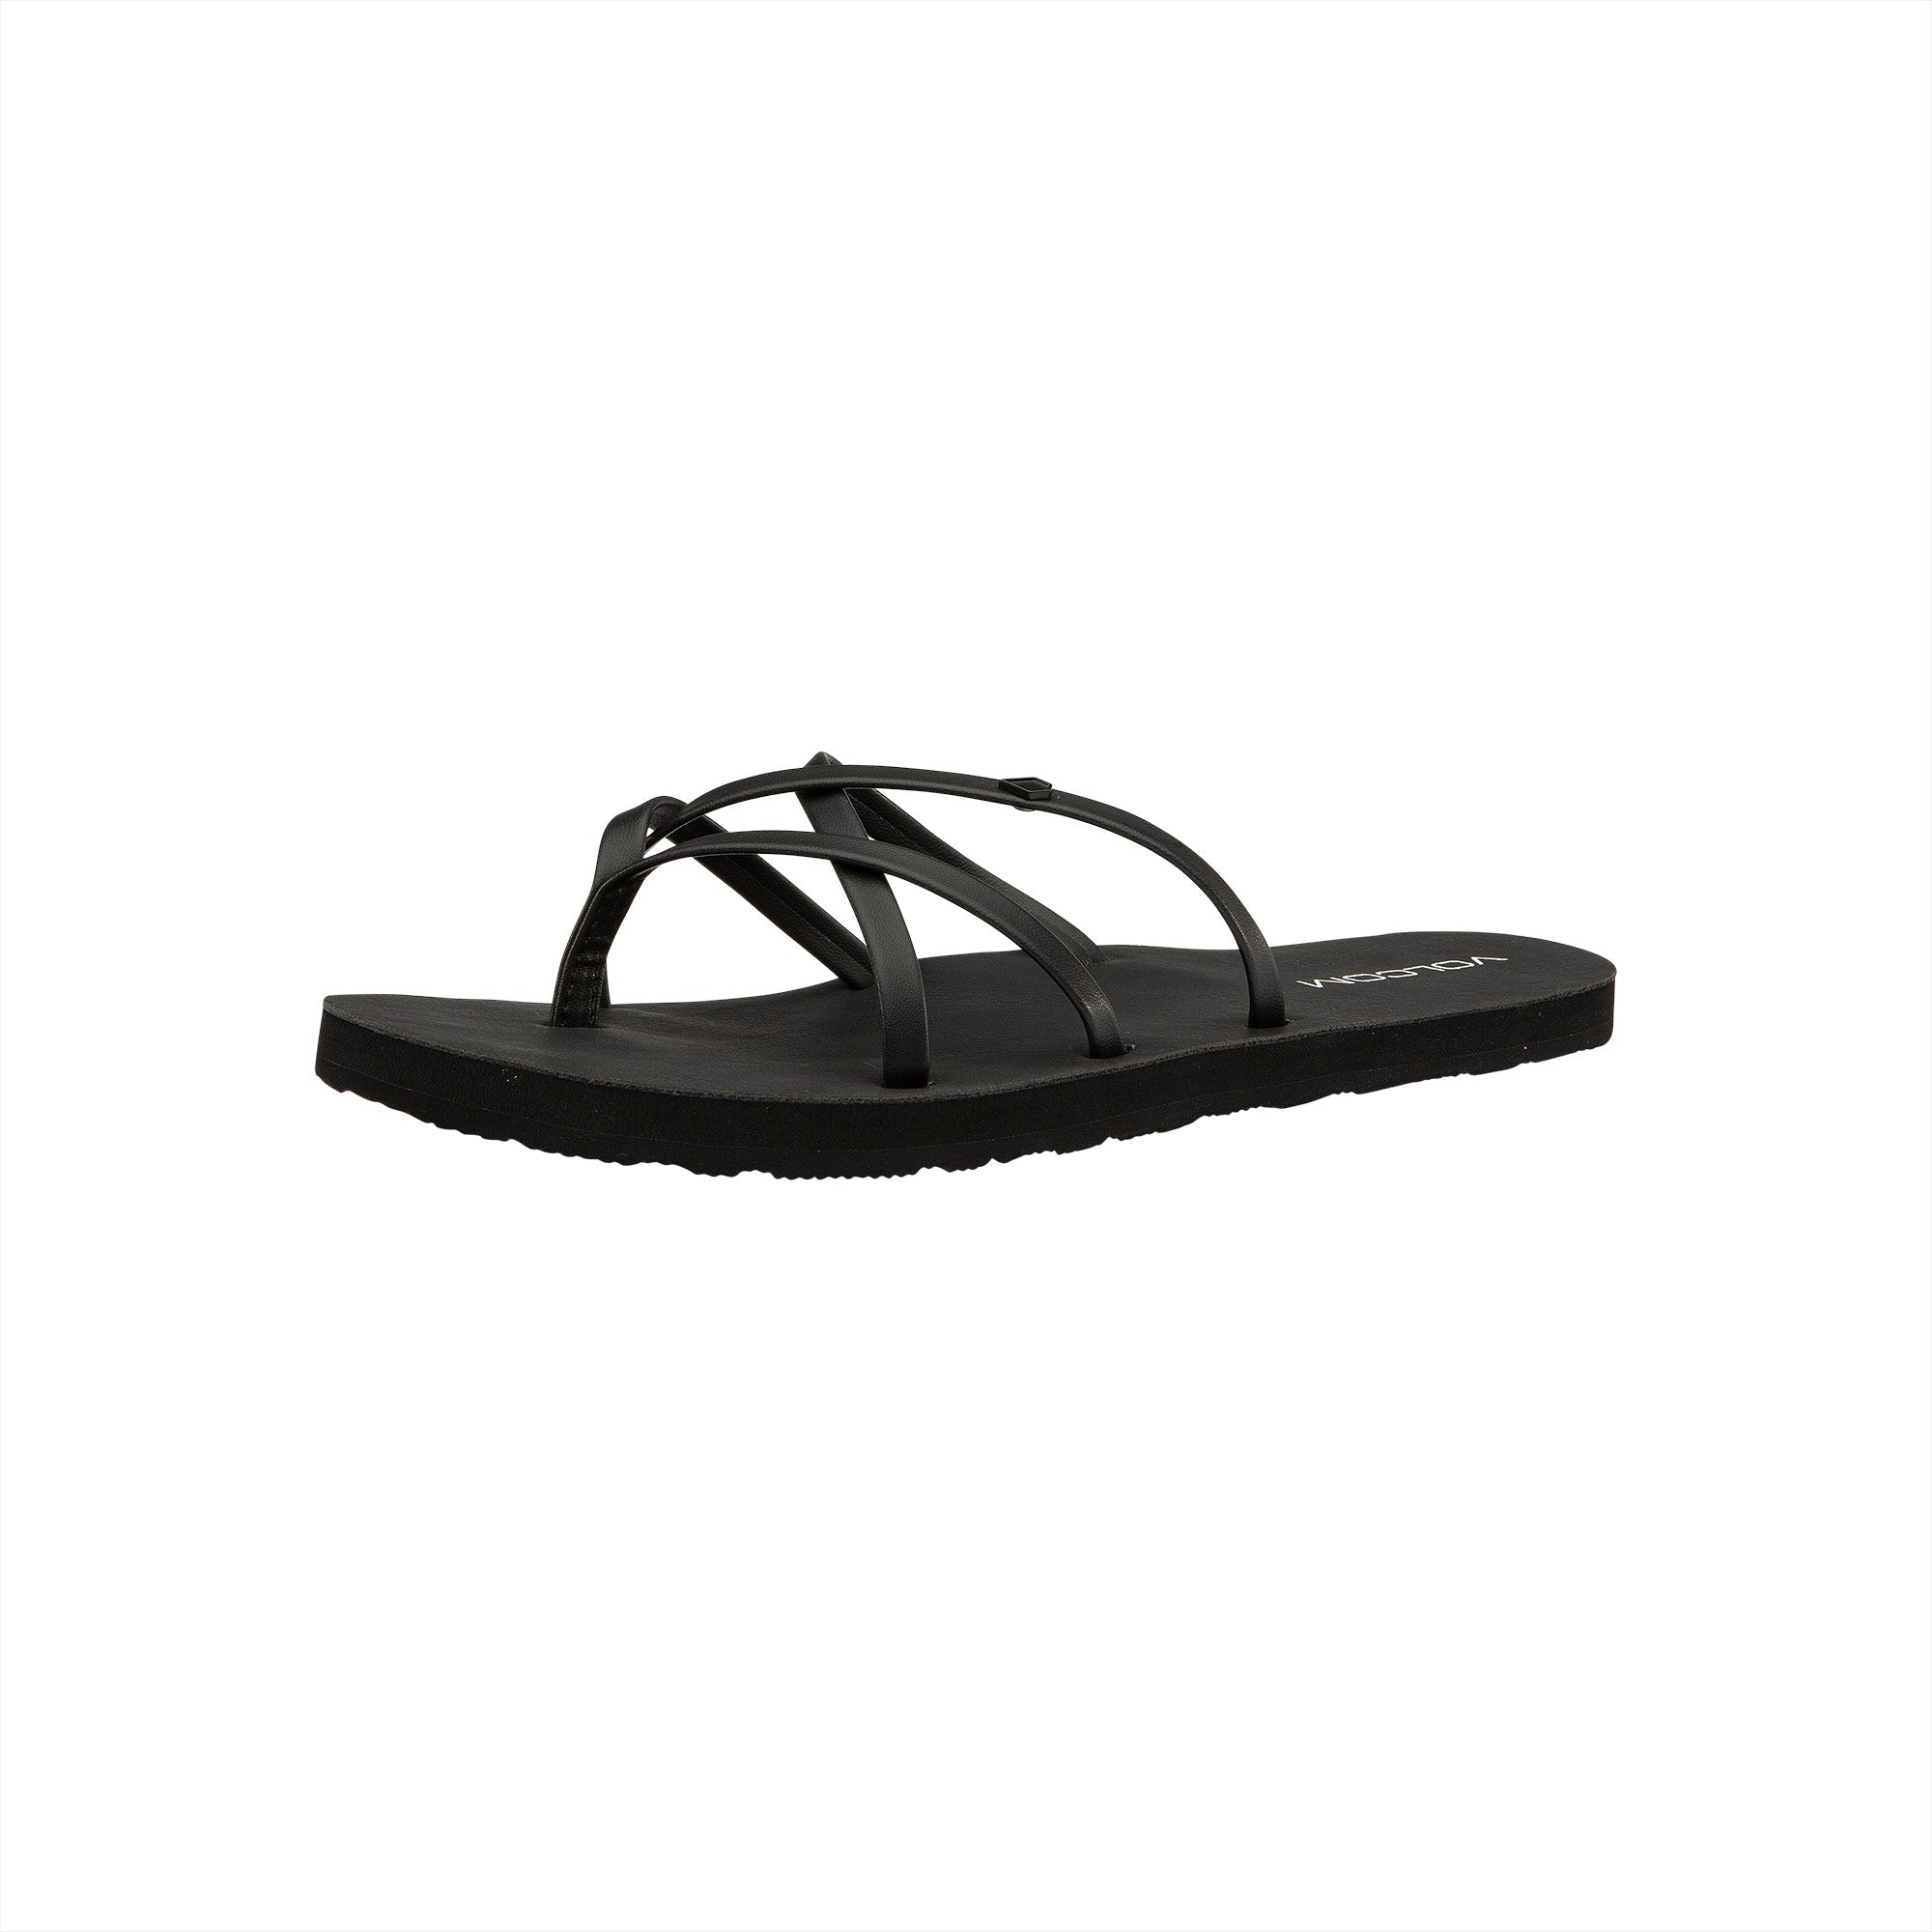 Volcom Women's New School Sandals